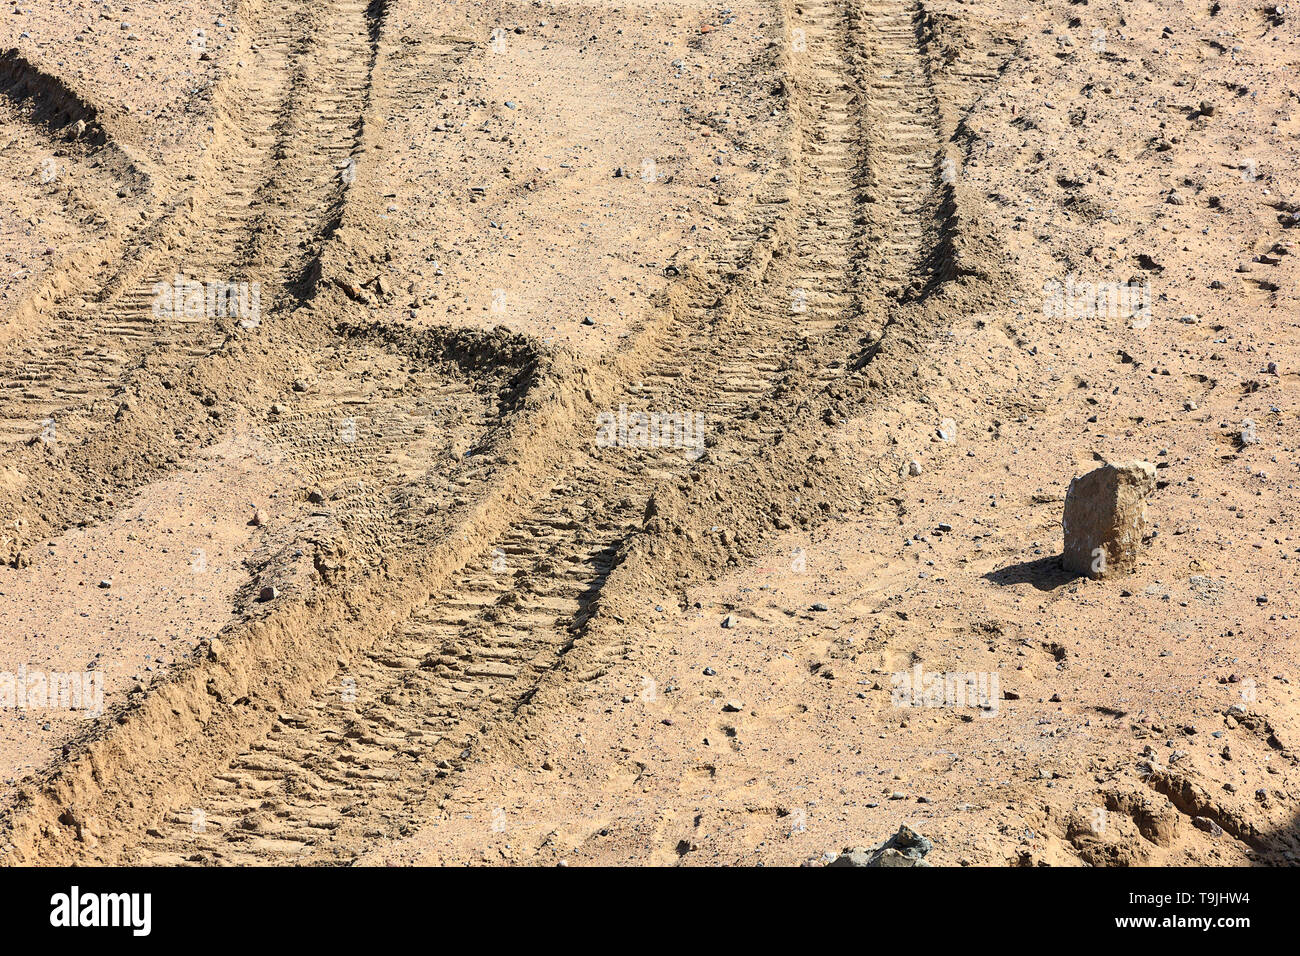 Traces of tire treads on the sand. - Stock Image